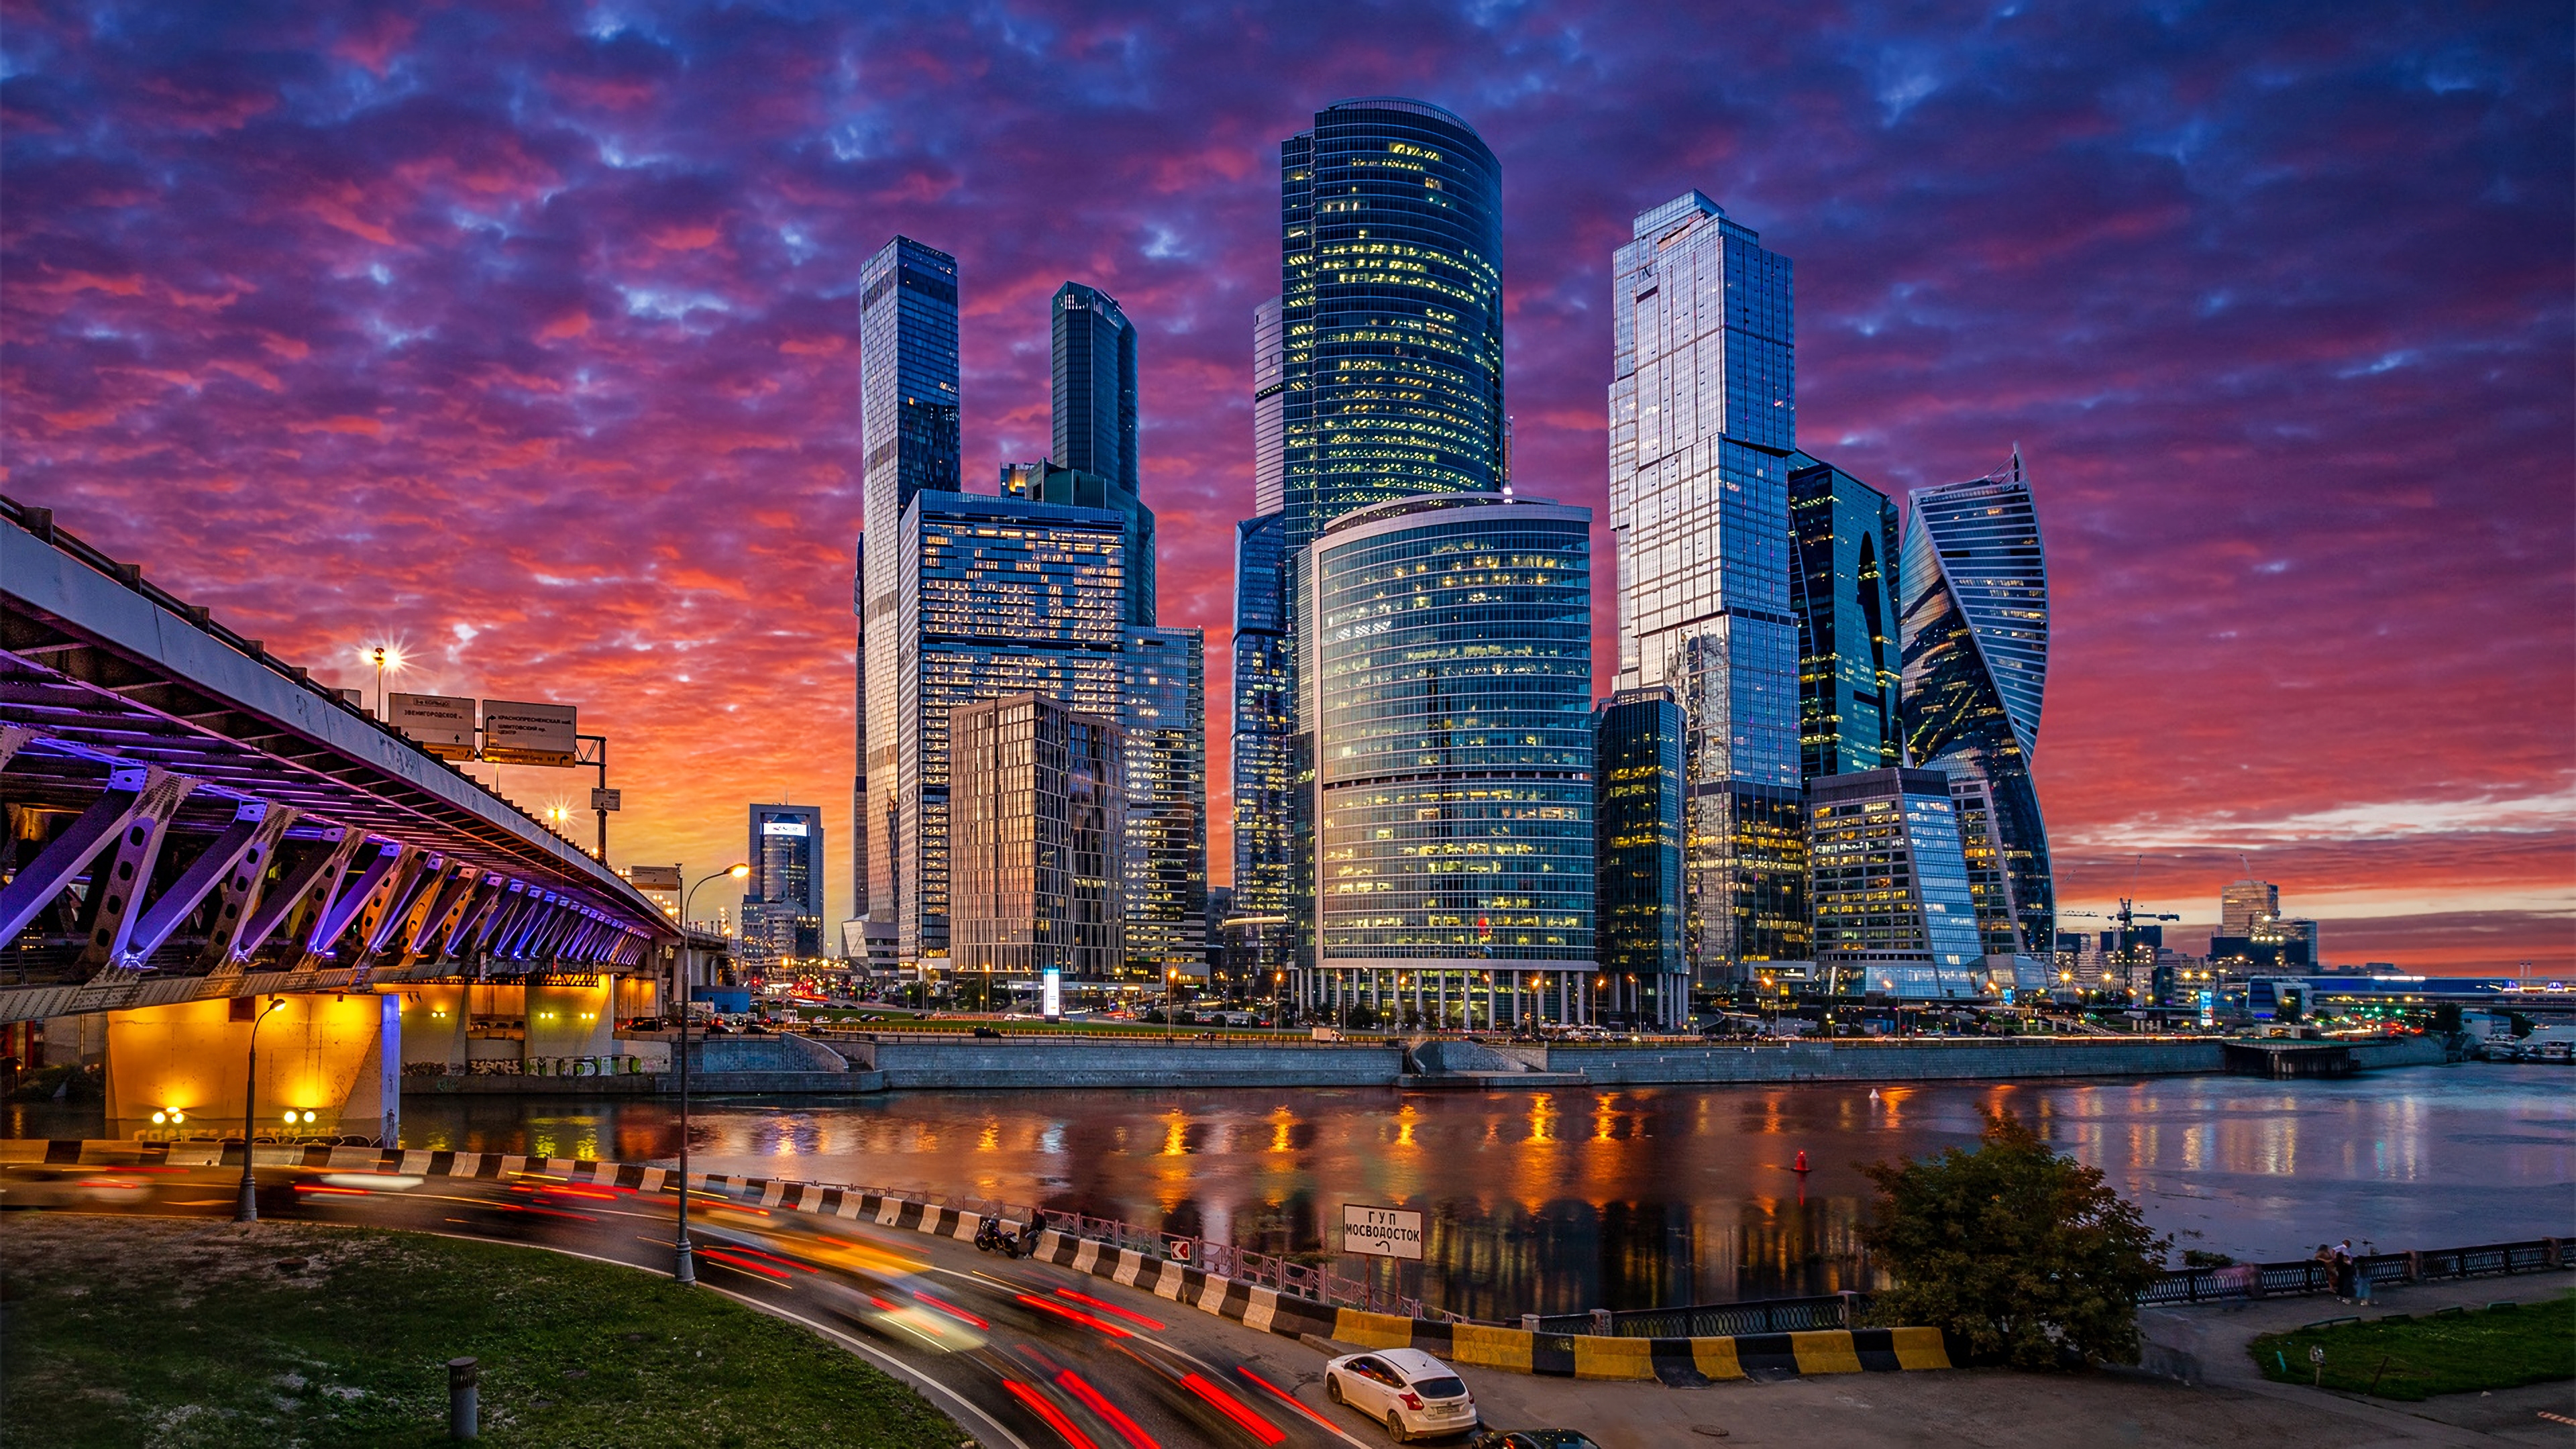 Russia moscow cityscape 4k hd world 4k wallpapers images backgrounds photos and pictures - 4k wallpaper russia ...